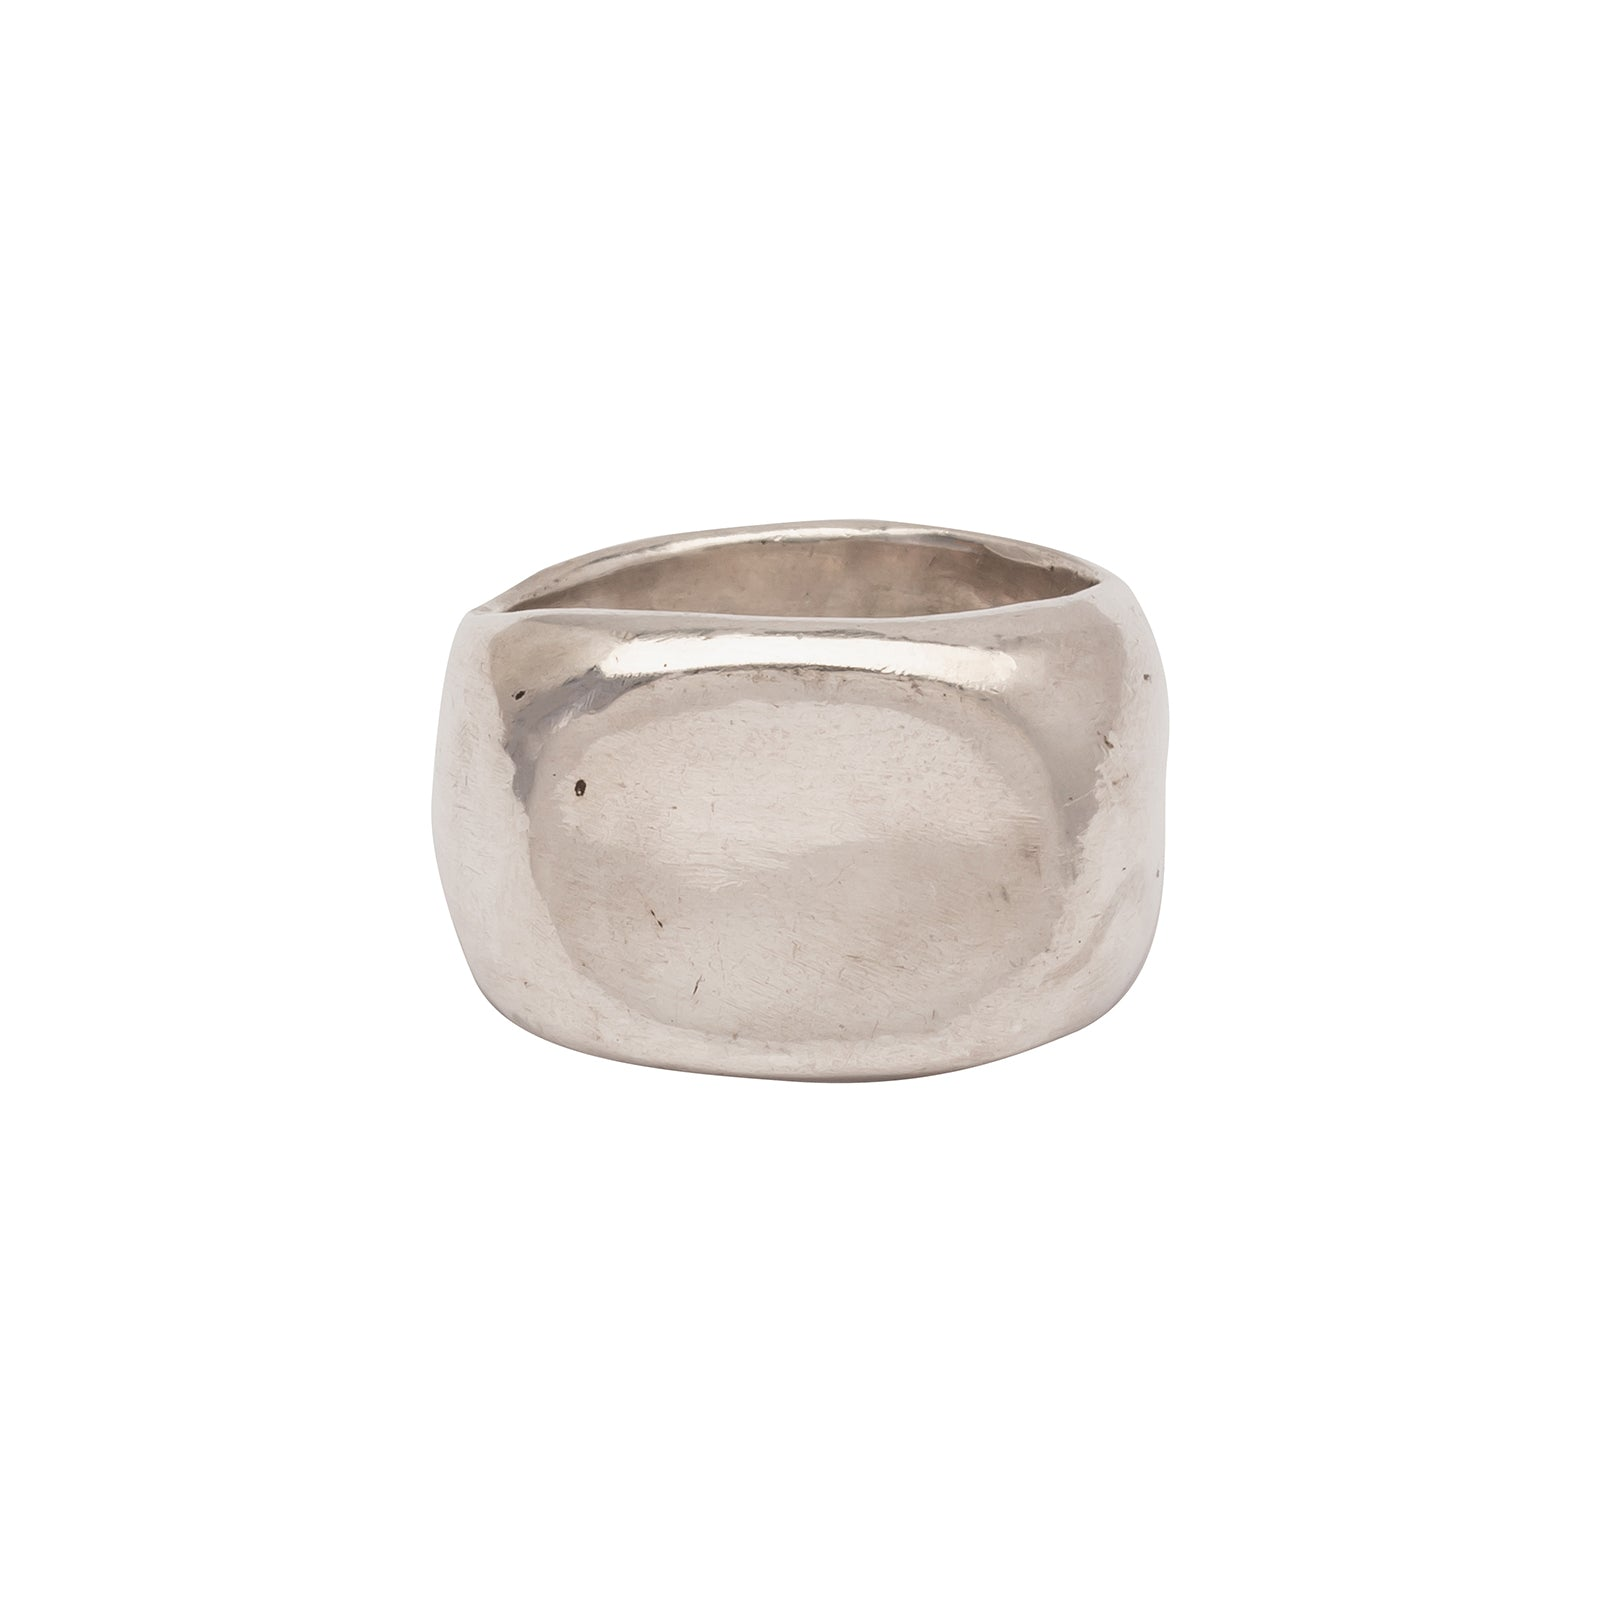 James Colarusso Small Concave Ring - Silver - Rings - Broken English Jewelry